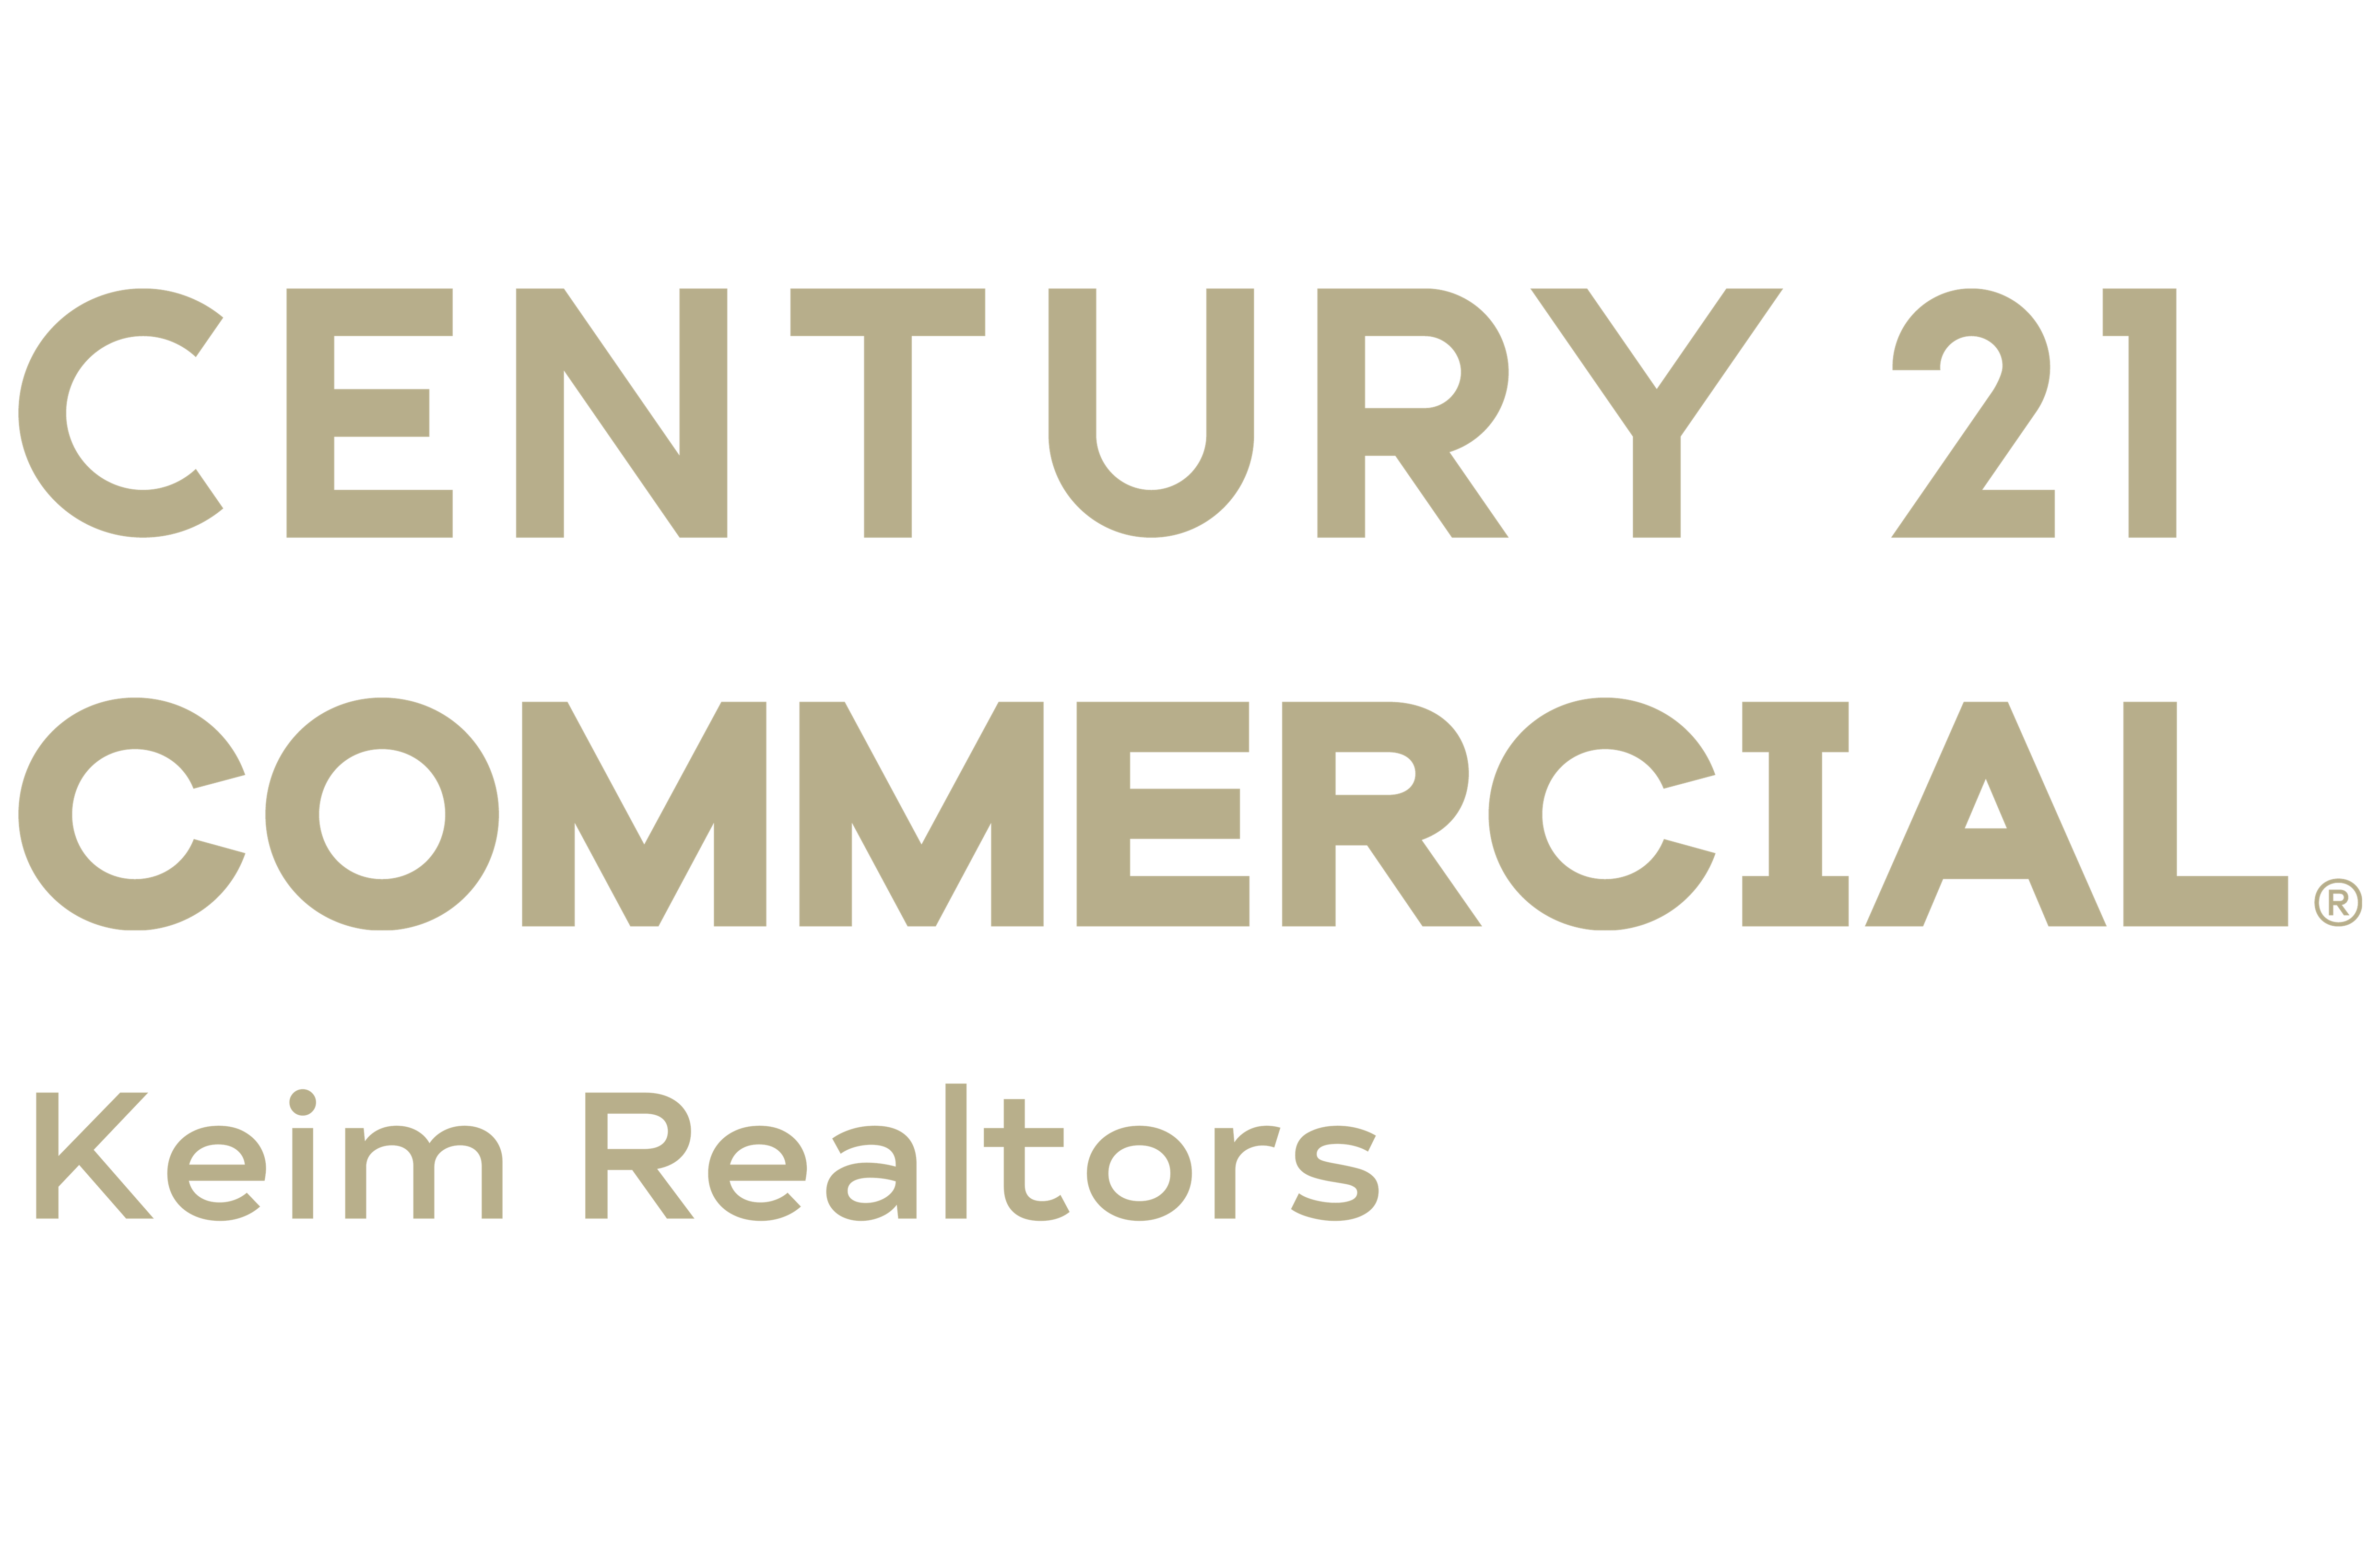 The Keim Group of CENTURY 21 Keim Realtors logo